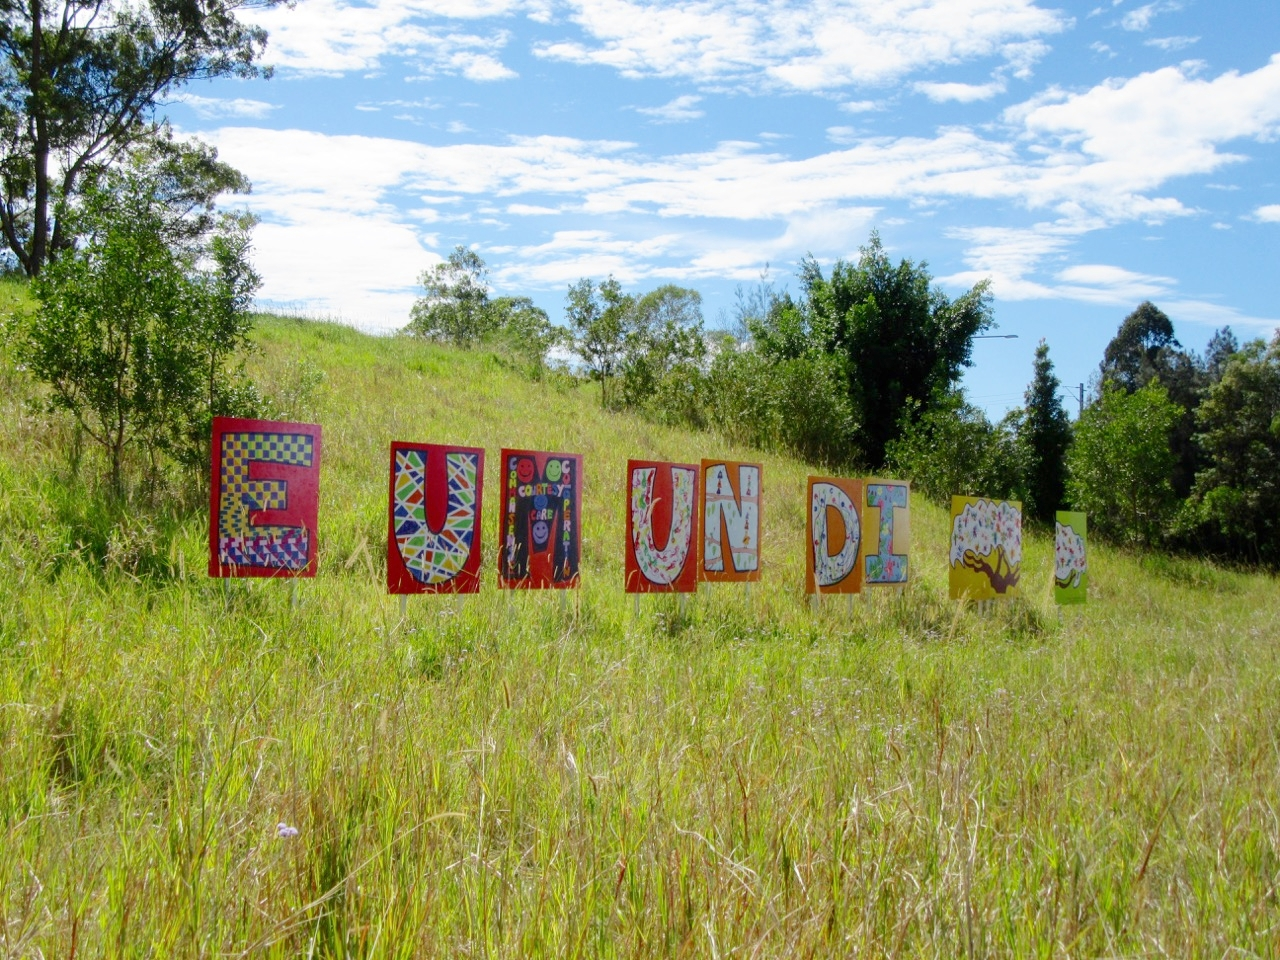 The welcome sign for Eumundi was adorable!